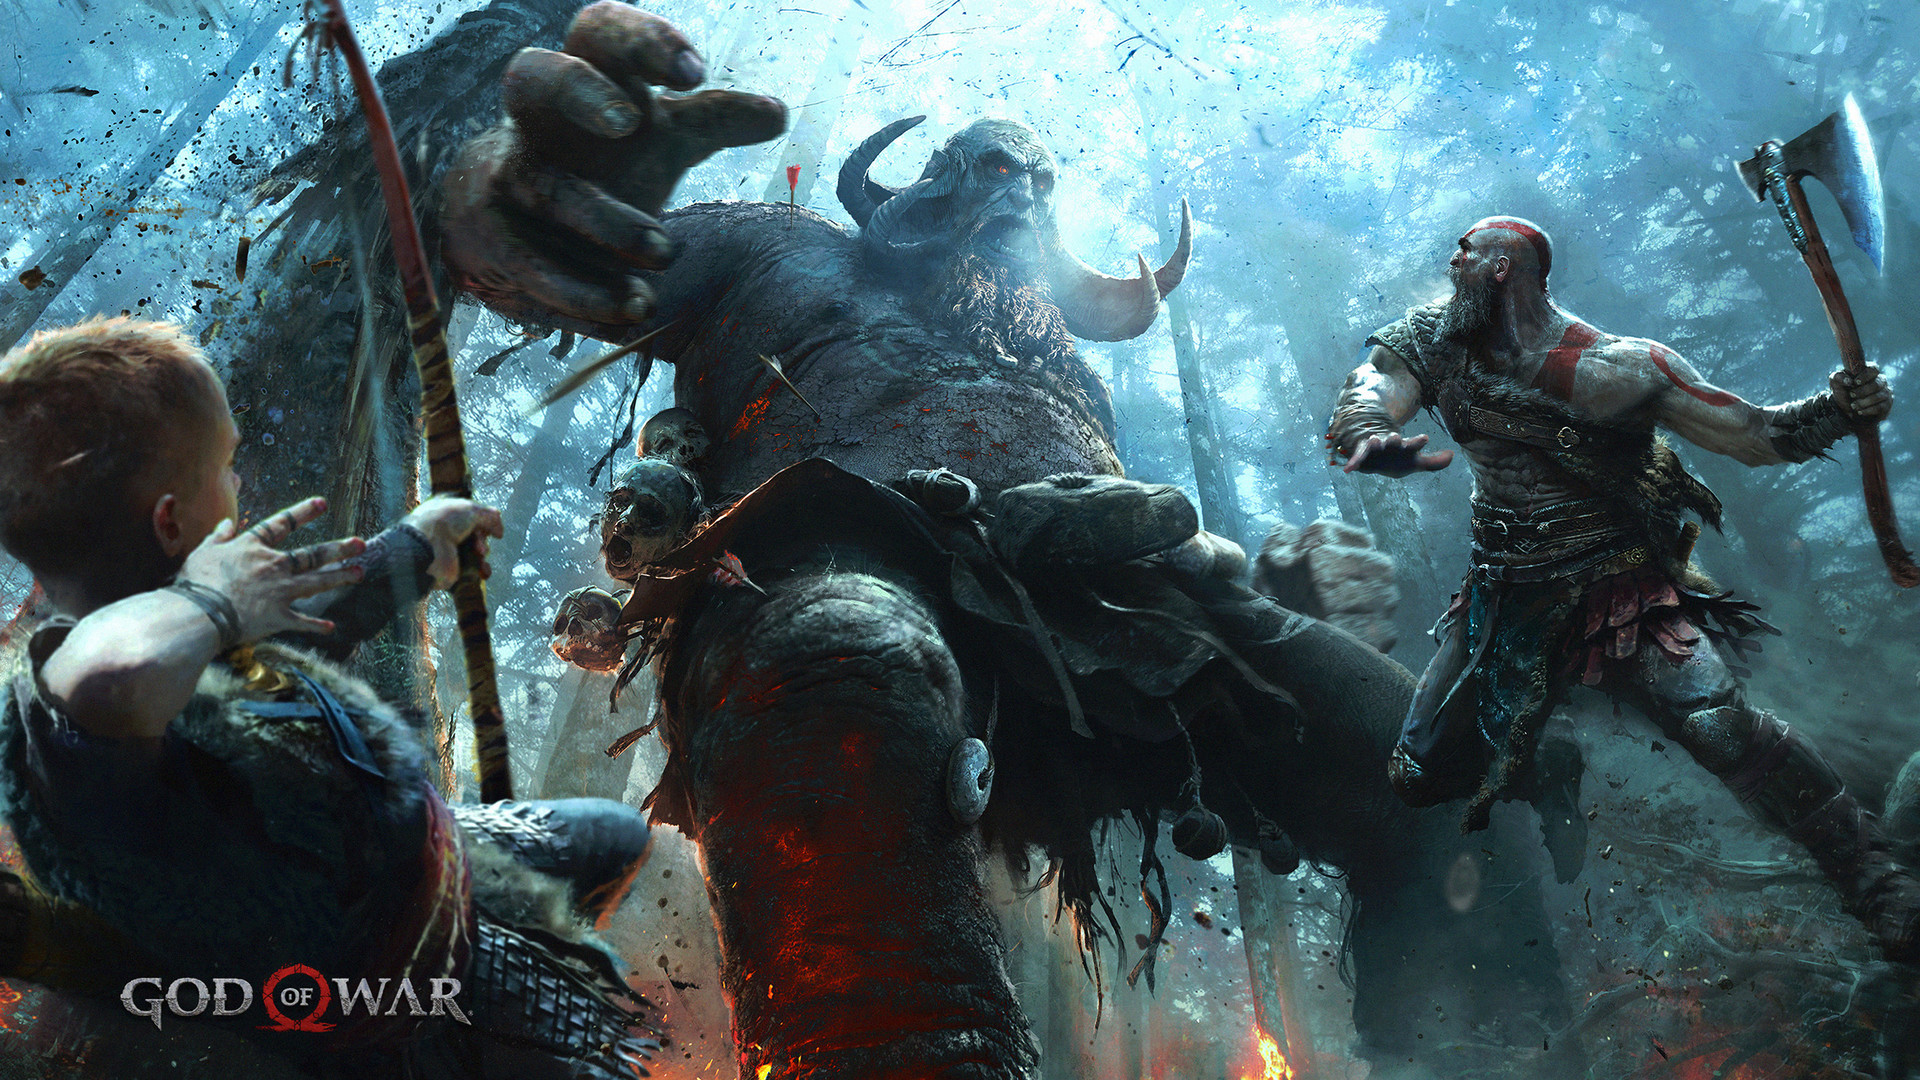 Res: 1920x1080, Kratos with his son fighting a Norse deity Wallpaper from God of War